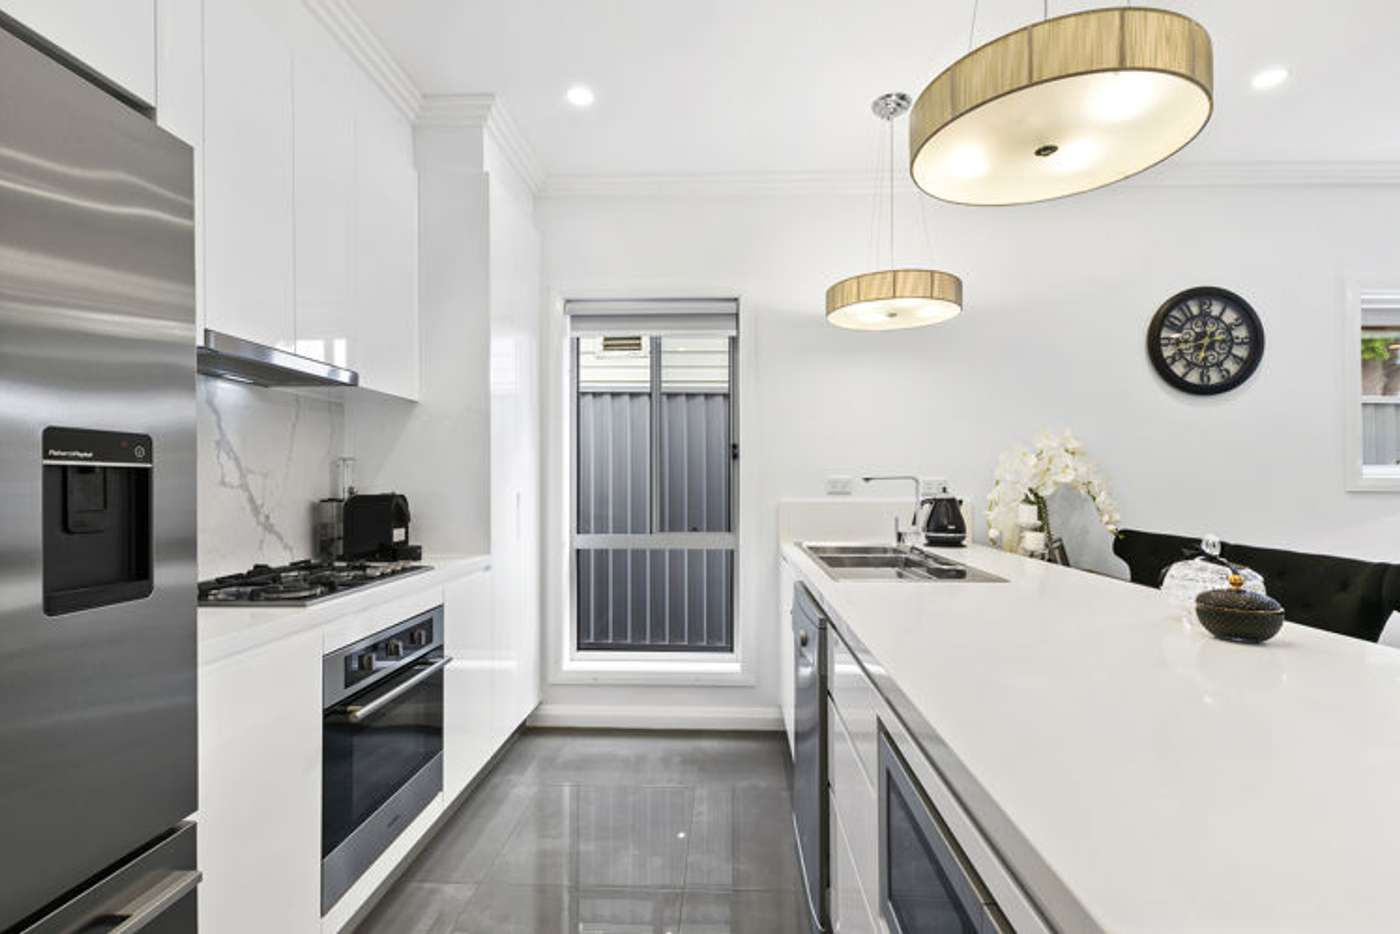 Fifth view of Homely house listing, 166 Chetwynd Road, Guildford NSW 2161